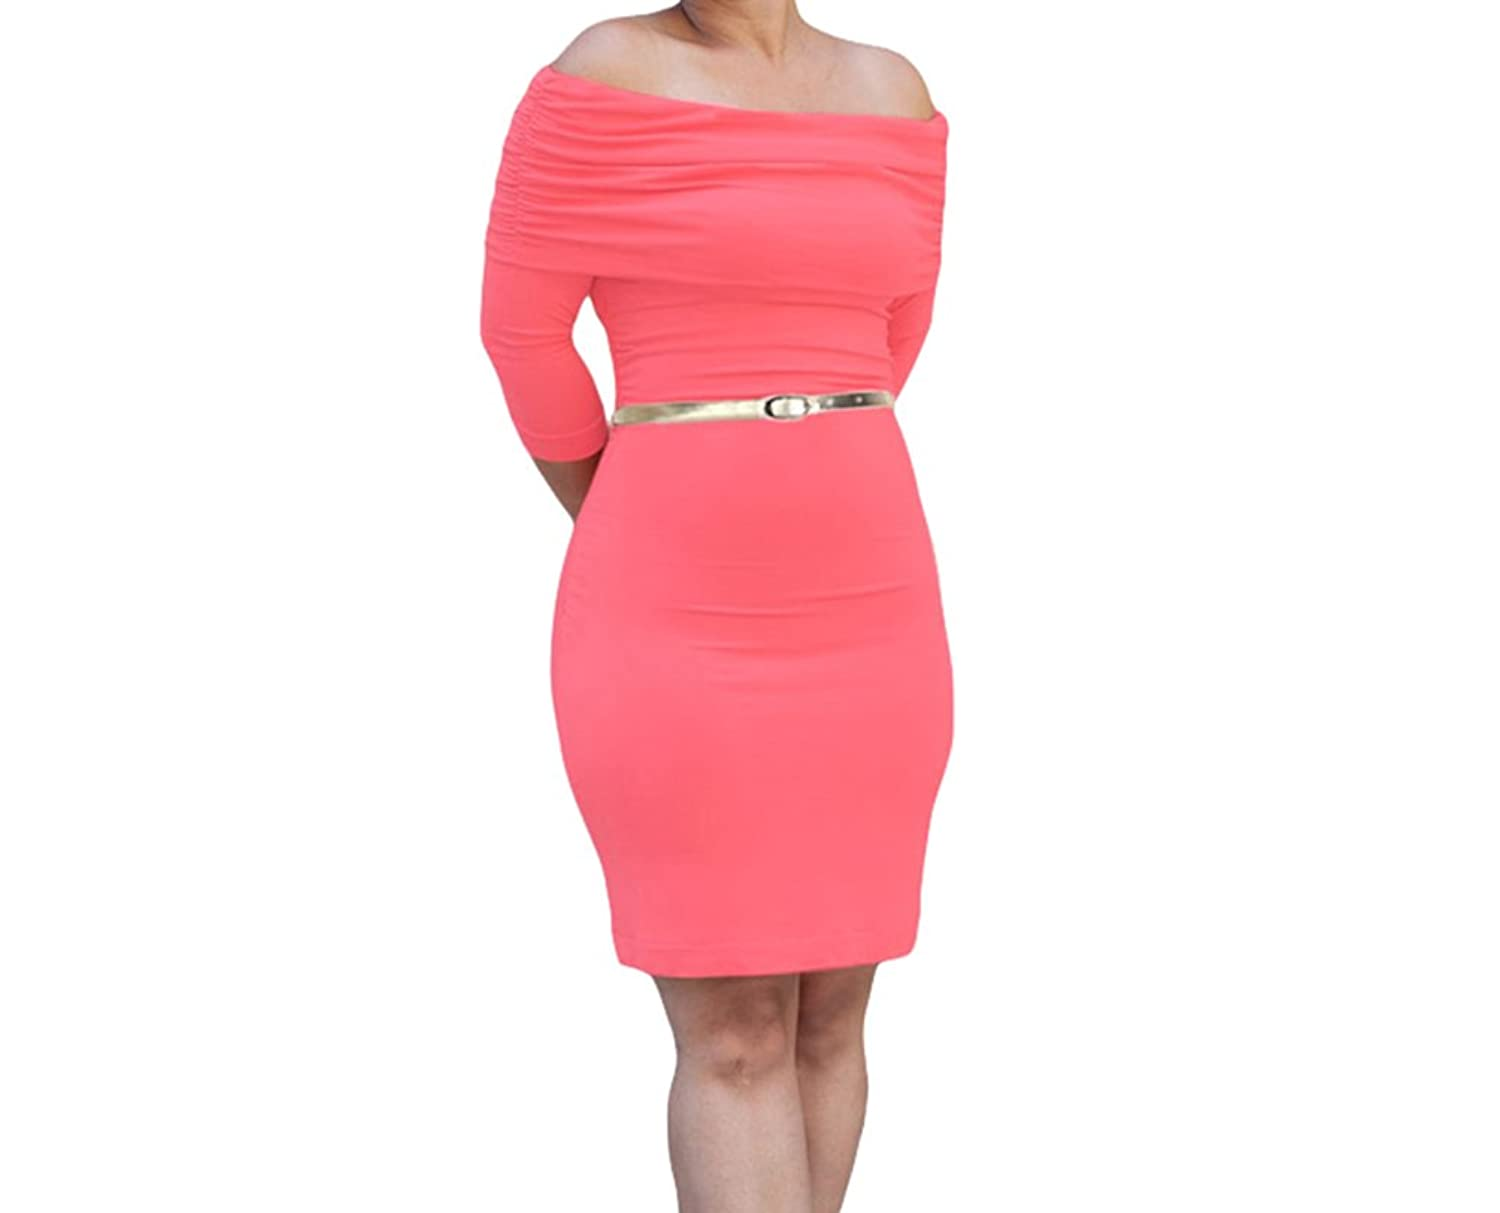 PEGGYNCO Womens Red Three Quarter Sleeve Ruched Overlay Bust Bodycon Dress